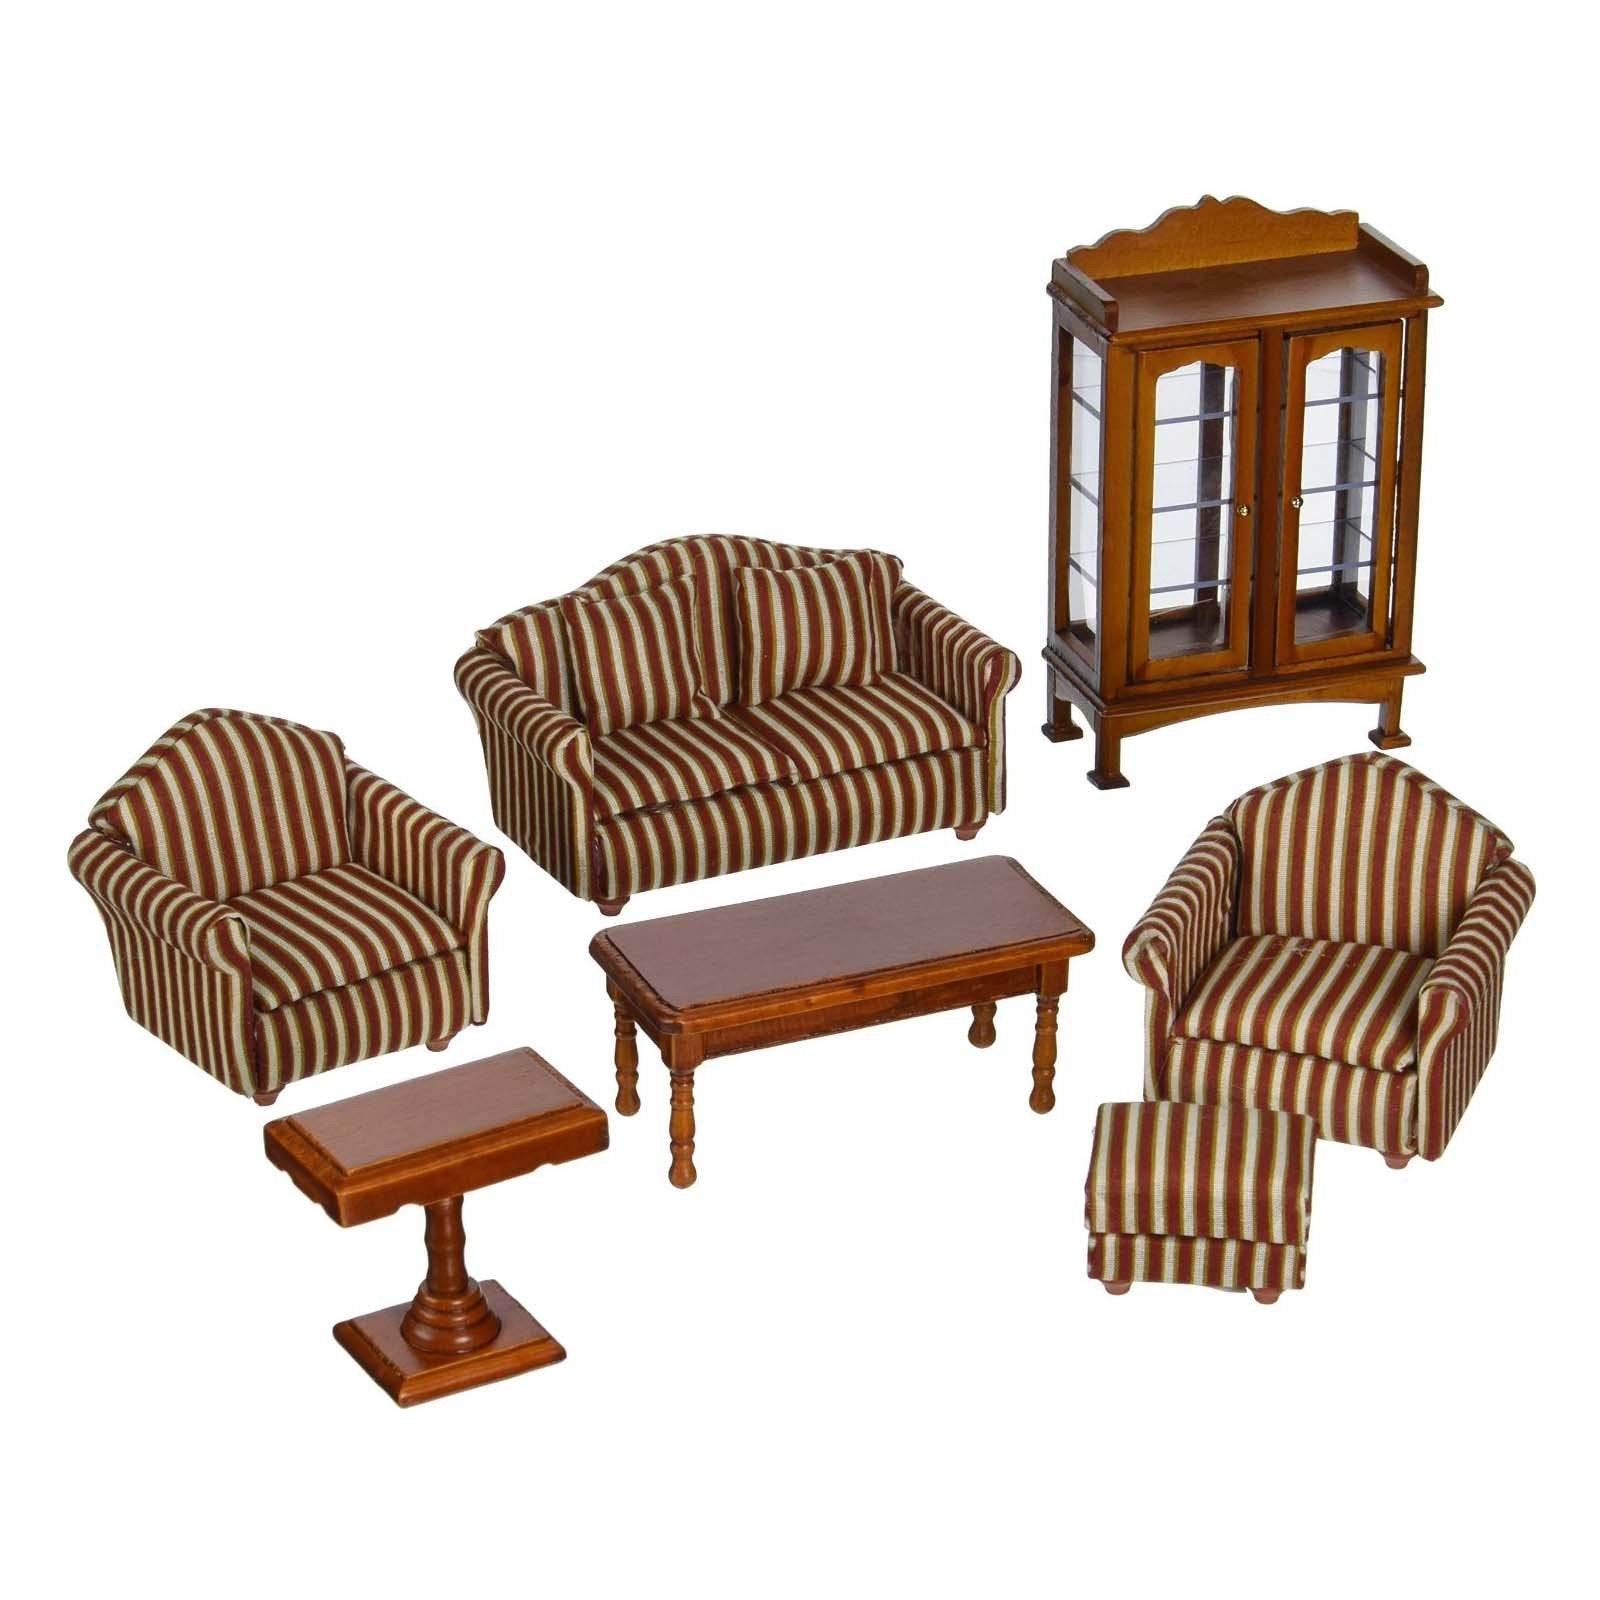 Excellent Melissa And Doug Doll House Furniture Living Room Set Download Free Architecture Designs Scobabritishbridgeorg